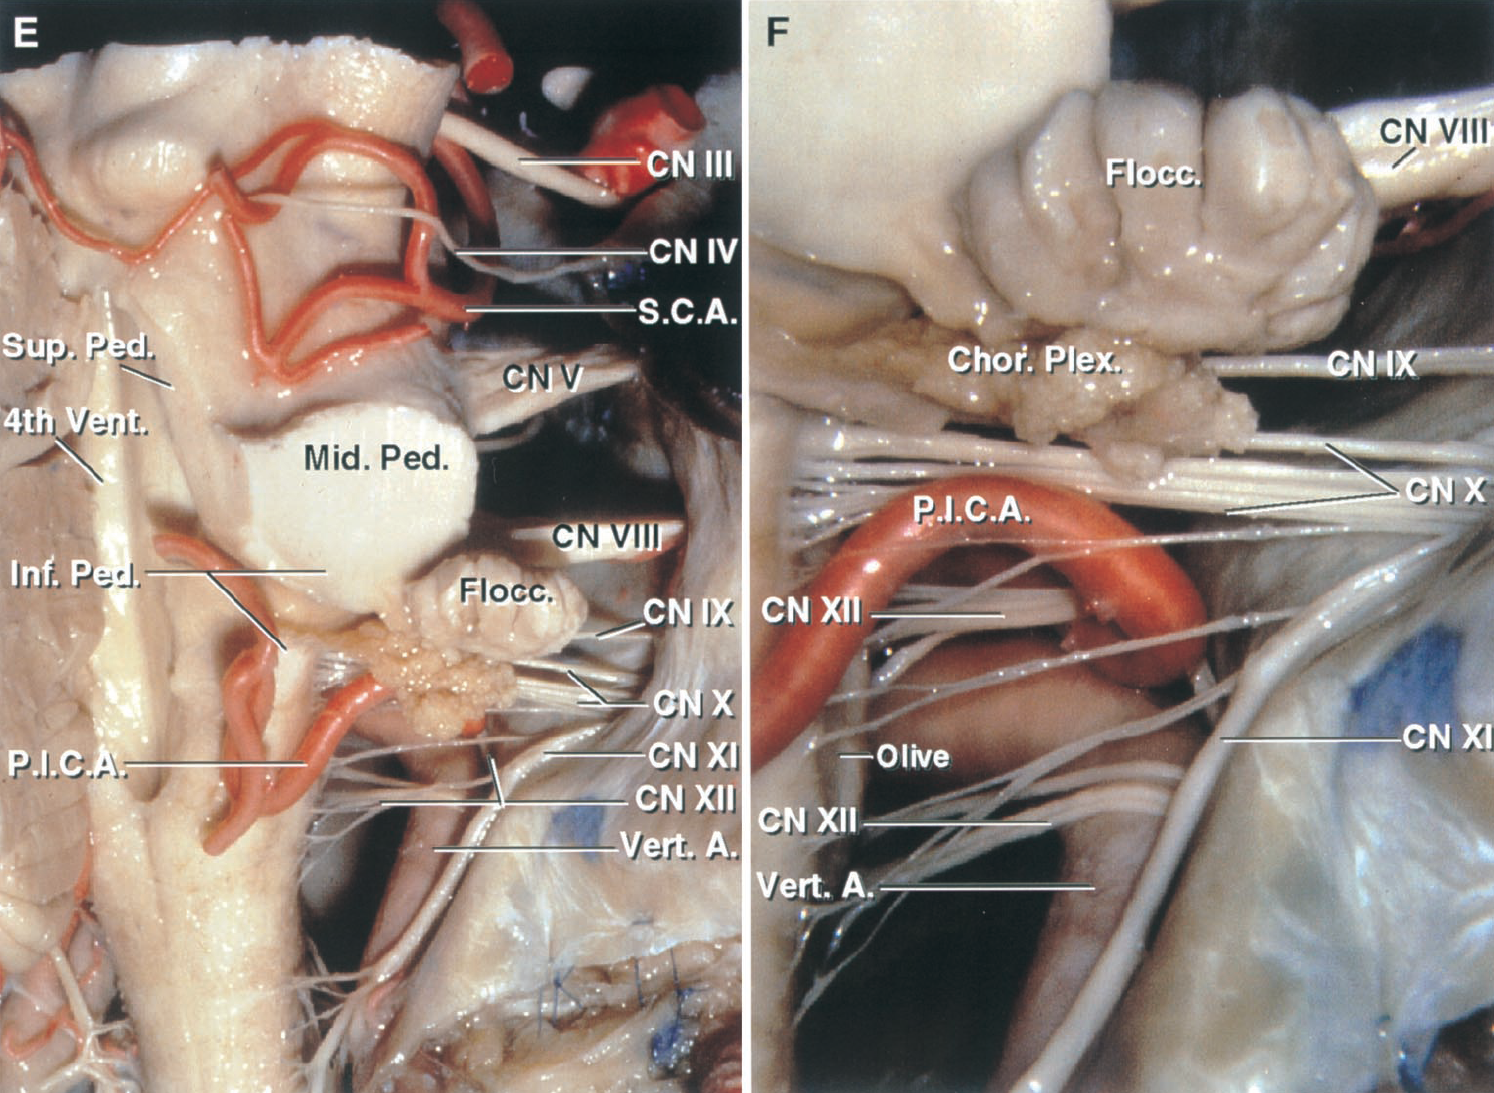 FIGURE 2.4. E and F.Cerebellar arteries, brainstem,and cerebellar-brainstem fissures. E, the SCA passes abovethe trigeminal nerve and enters the cerebellomesencephalic fissure, where it sendsbranches down the superiorpeduncle to the dentatenucleus. The PICA passesbetween the vagus andaccessory nerves and courseson the inferior peduncle toreach the cerebellomedullaryfissure. F, enlarged view ofthe lateral recess. Theflocculus and choroid plexusproject laterally from themargin of the foramen ofLuschka into thecerebellopontine angle,behind the glossopharyngealand vagus nerves and abovethe PICA. The hypoglossalrootlets arises from the medulla in front of the glossopharyngeal and vagus nerves and cross the posterior surface of the vertebral artery. Some hypoglossal rootlets pass above and others below the PICA origin.